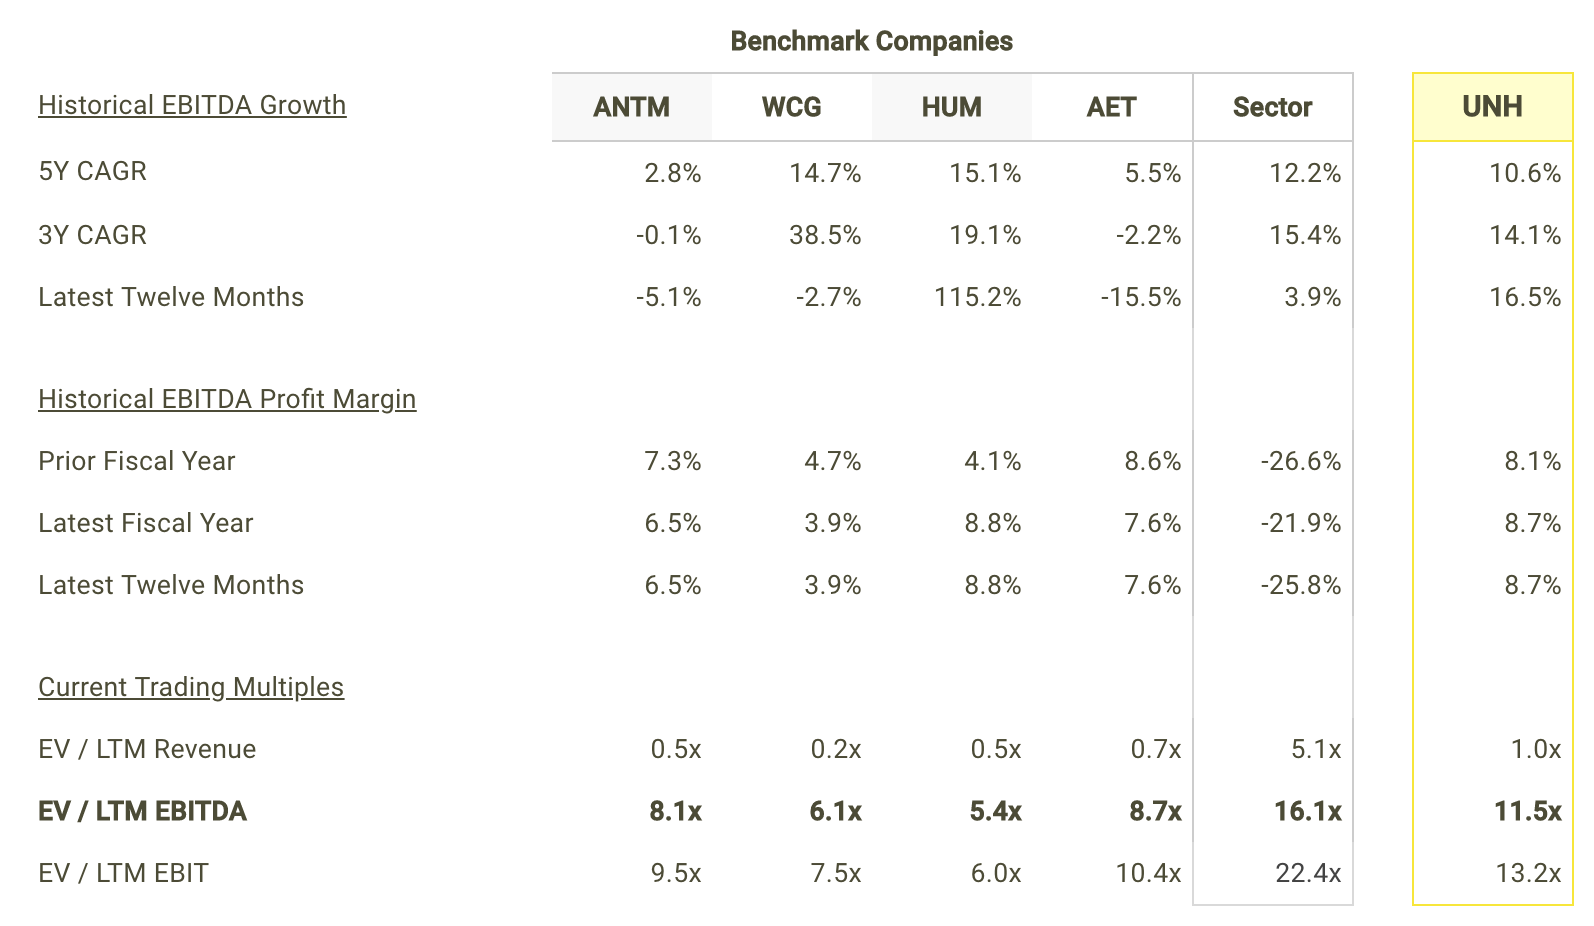 UNH EBITDA Growth and Margins vs Peers Table